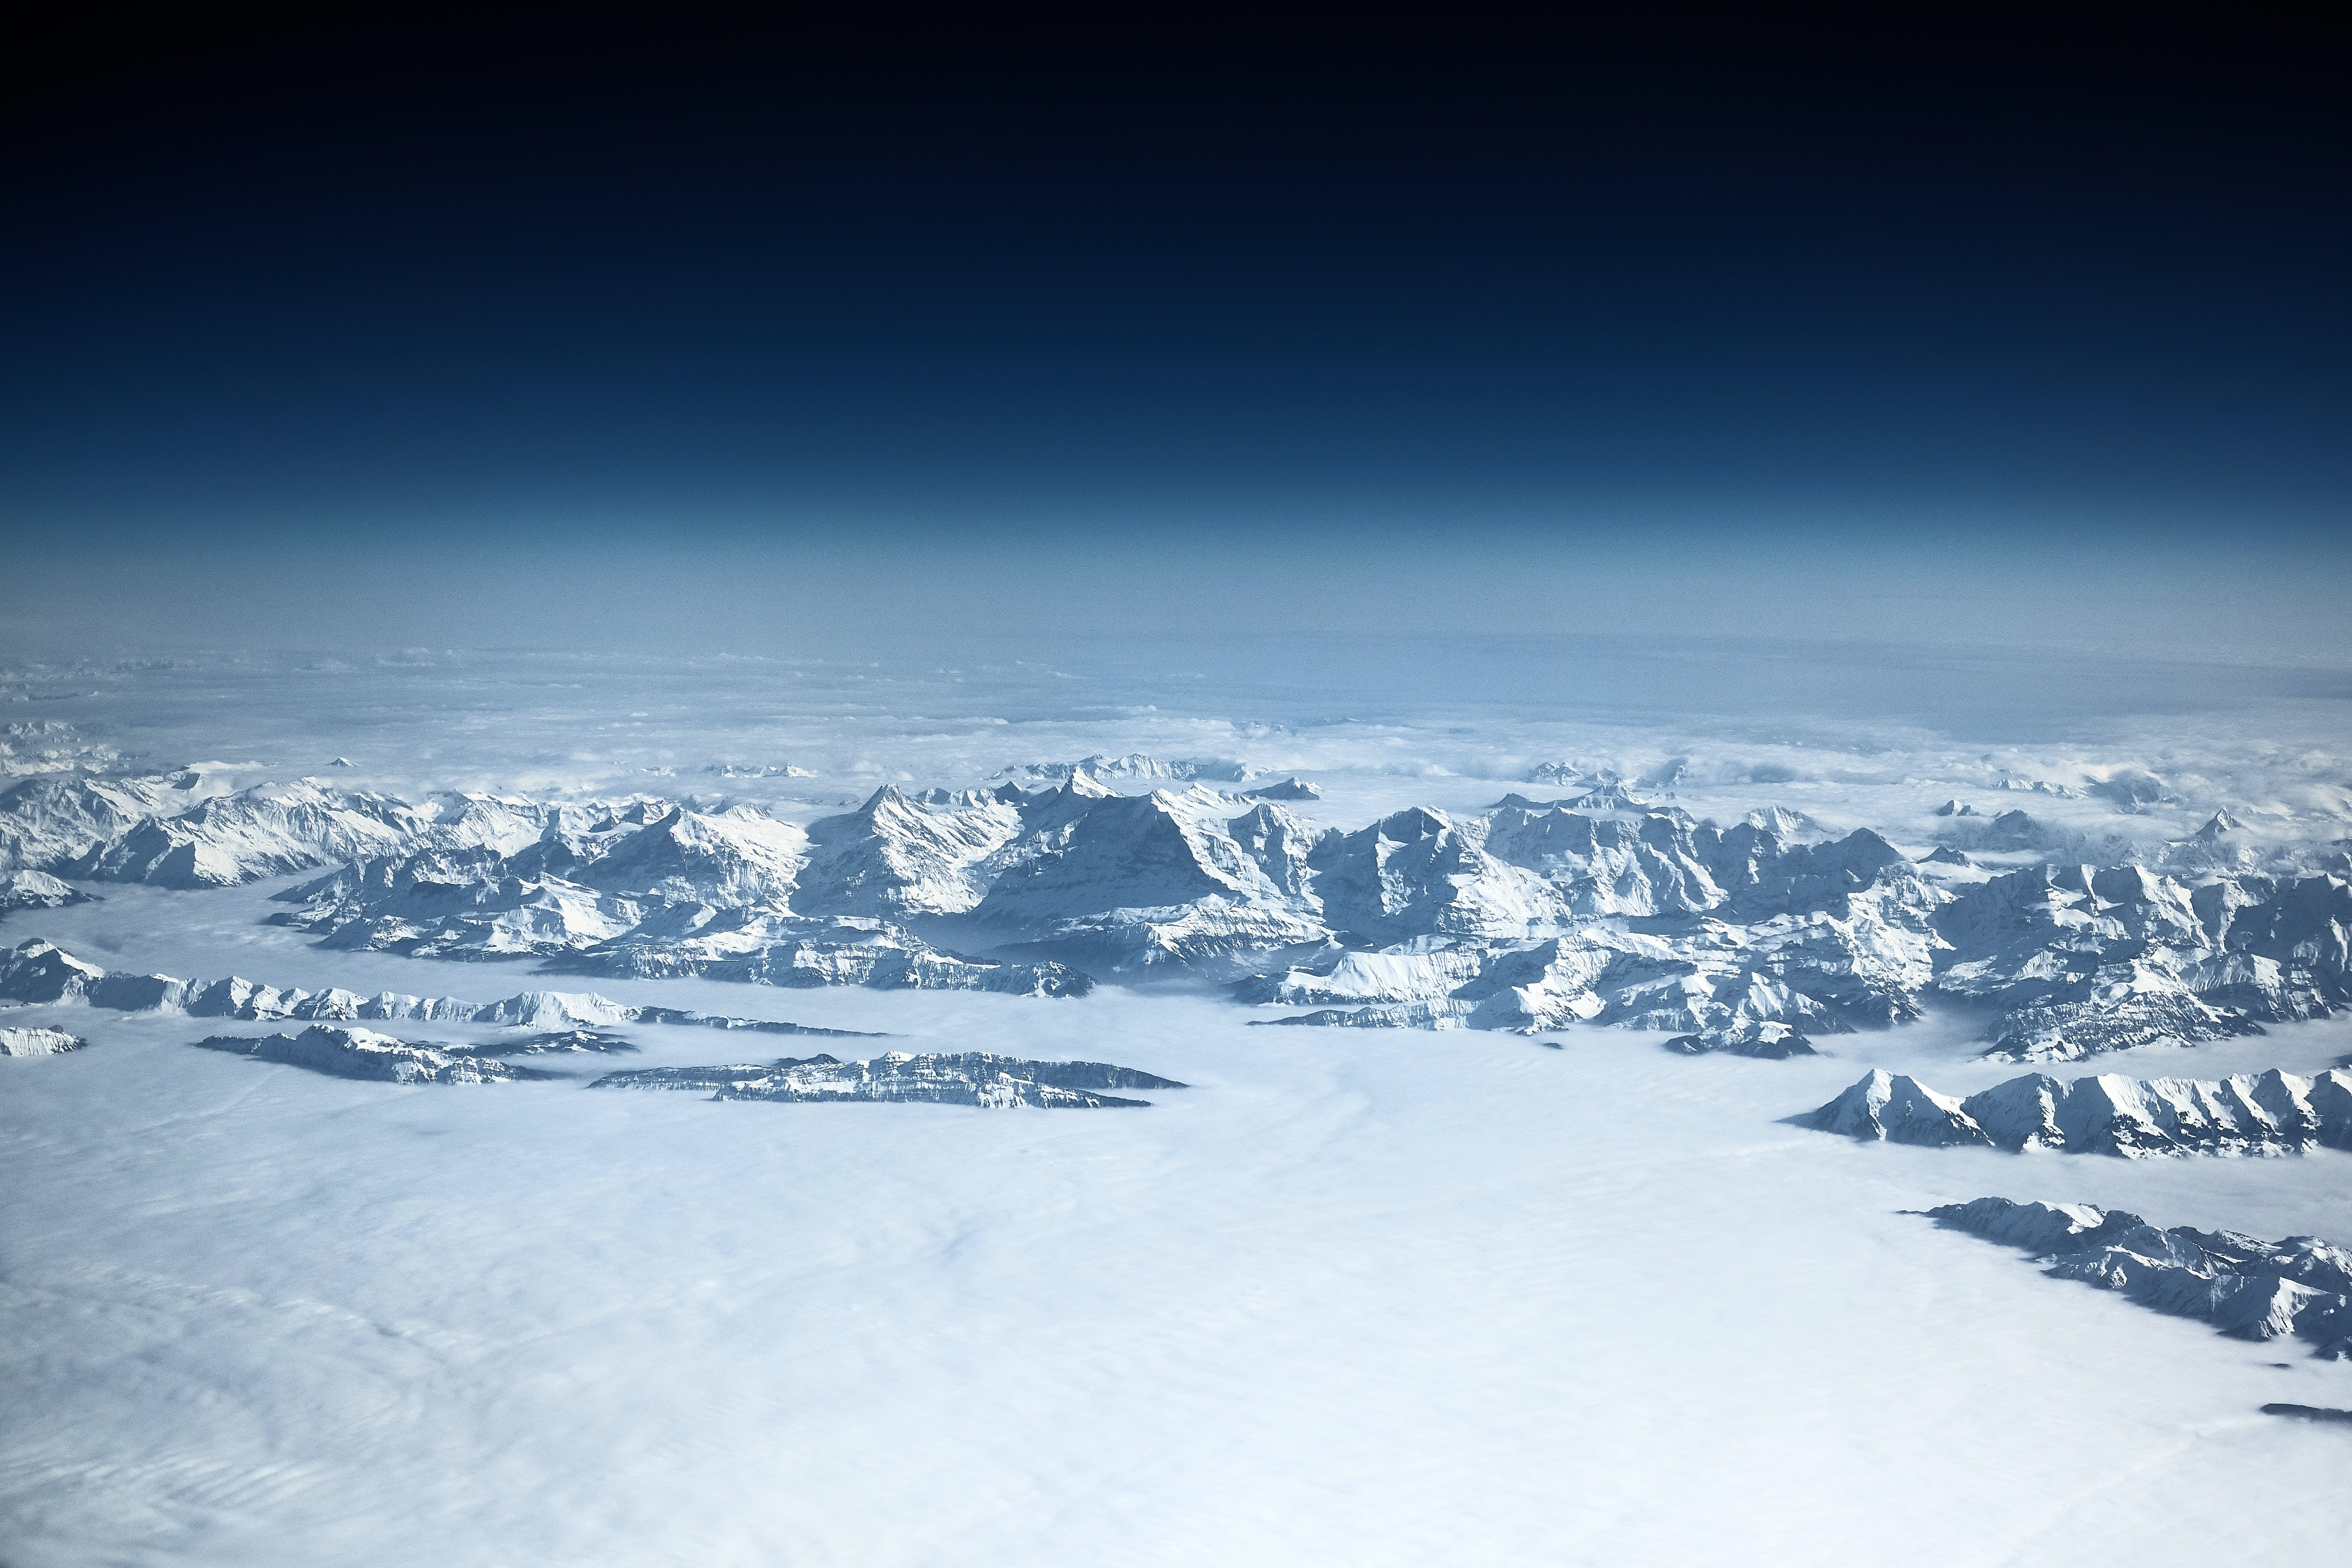 aerial view photography of white snow-covered mountain